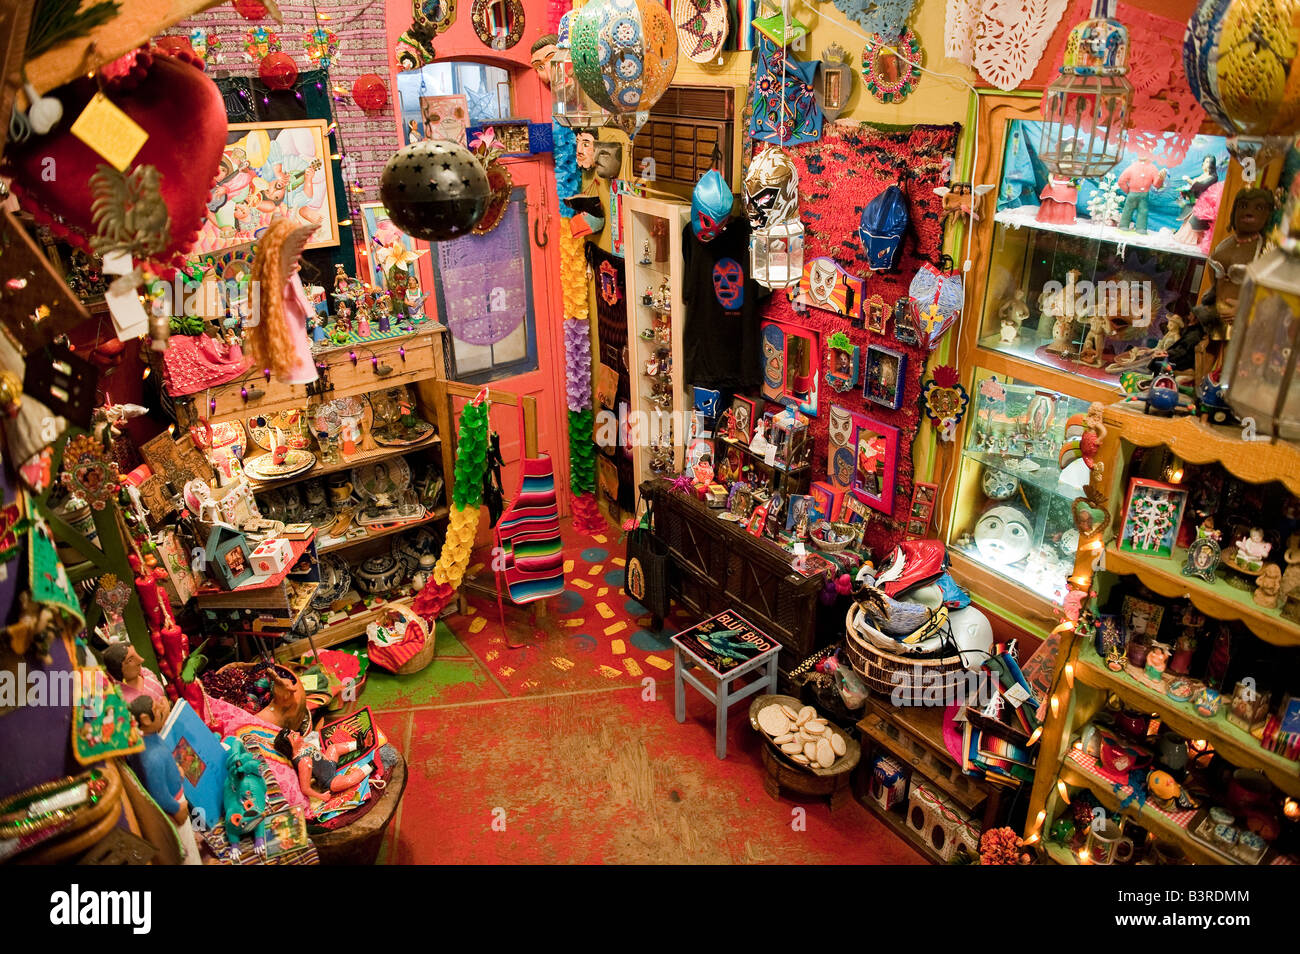 Colorful display of gifts and craft items in the Eyes Gallery on South Street Philadelphia Pennsylvania - Stock Image